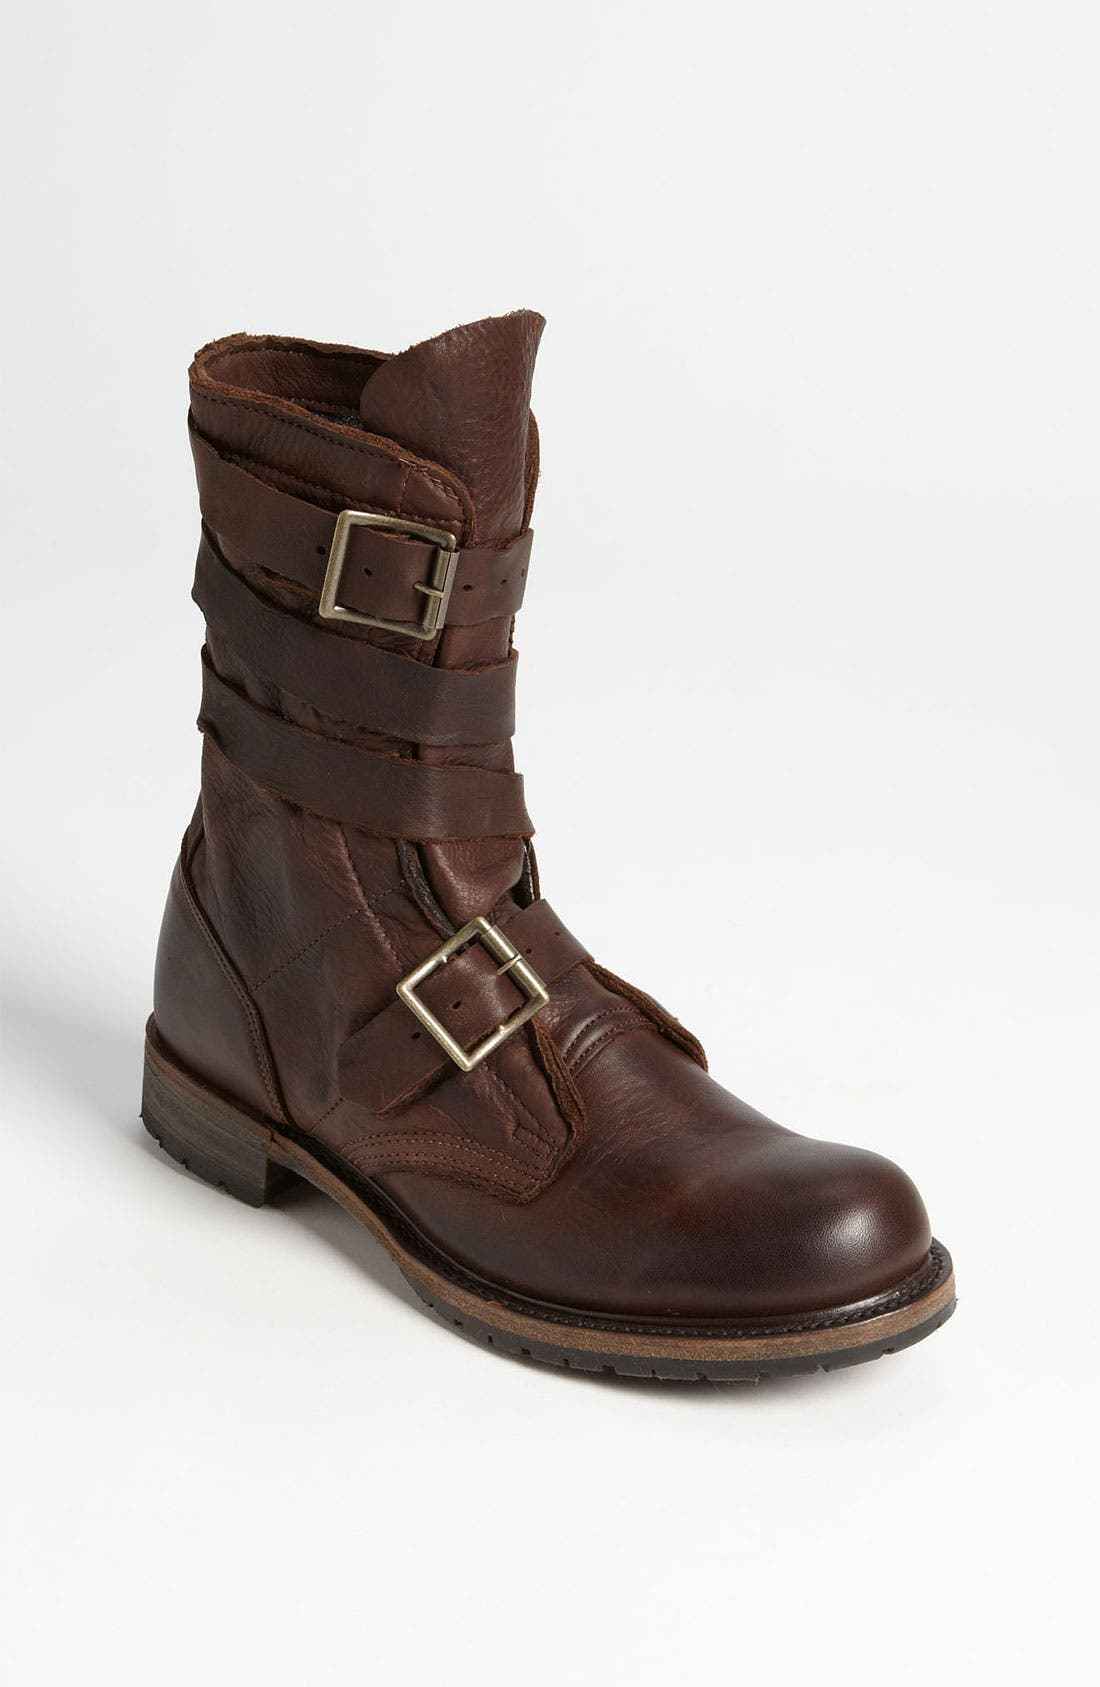 Alternate Image 1 Selected - Vintage Shoe Company 'Isaac' Boot